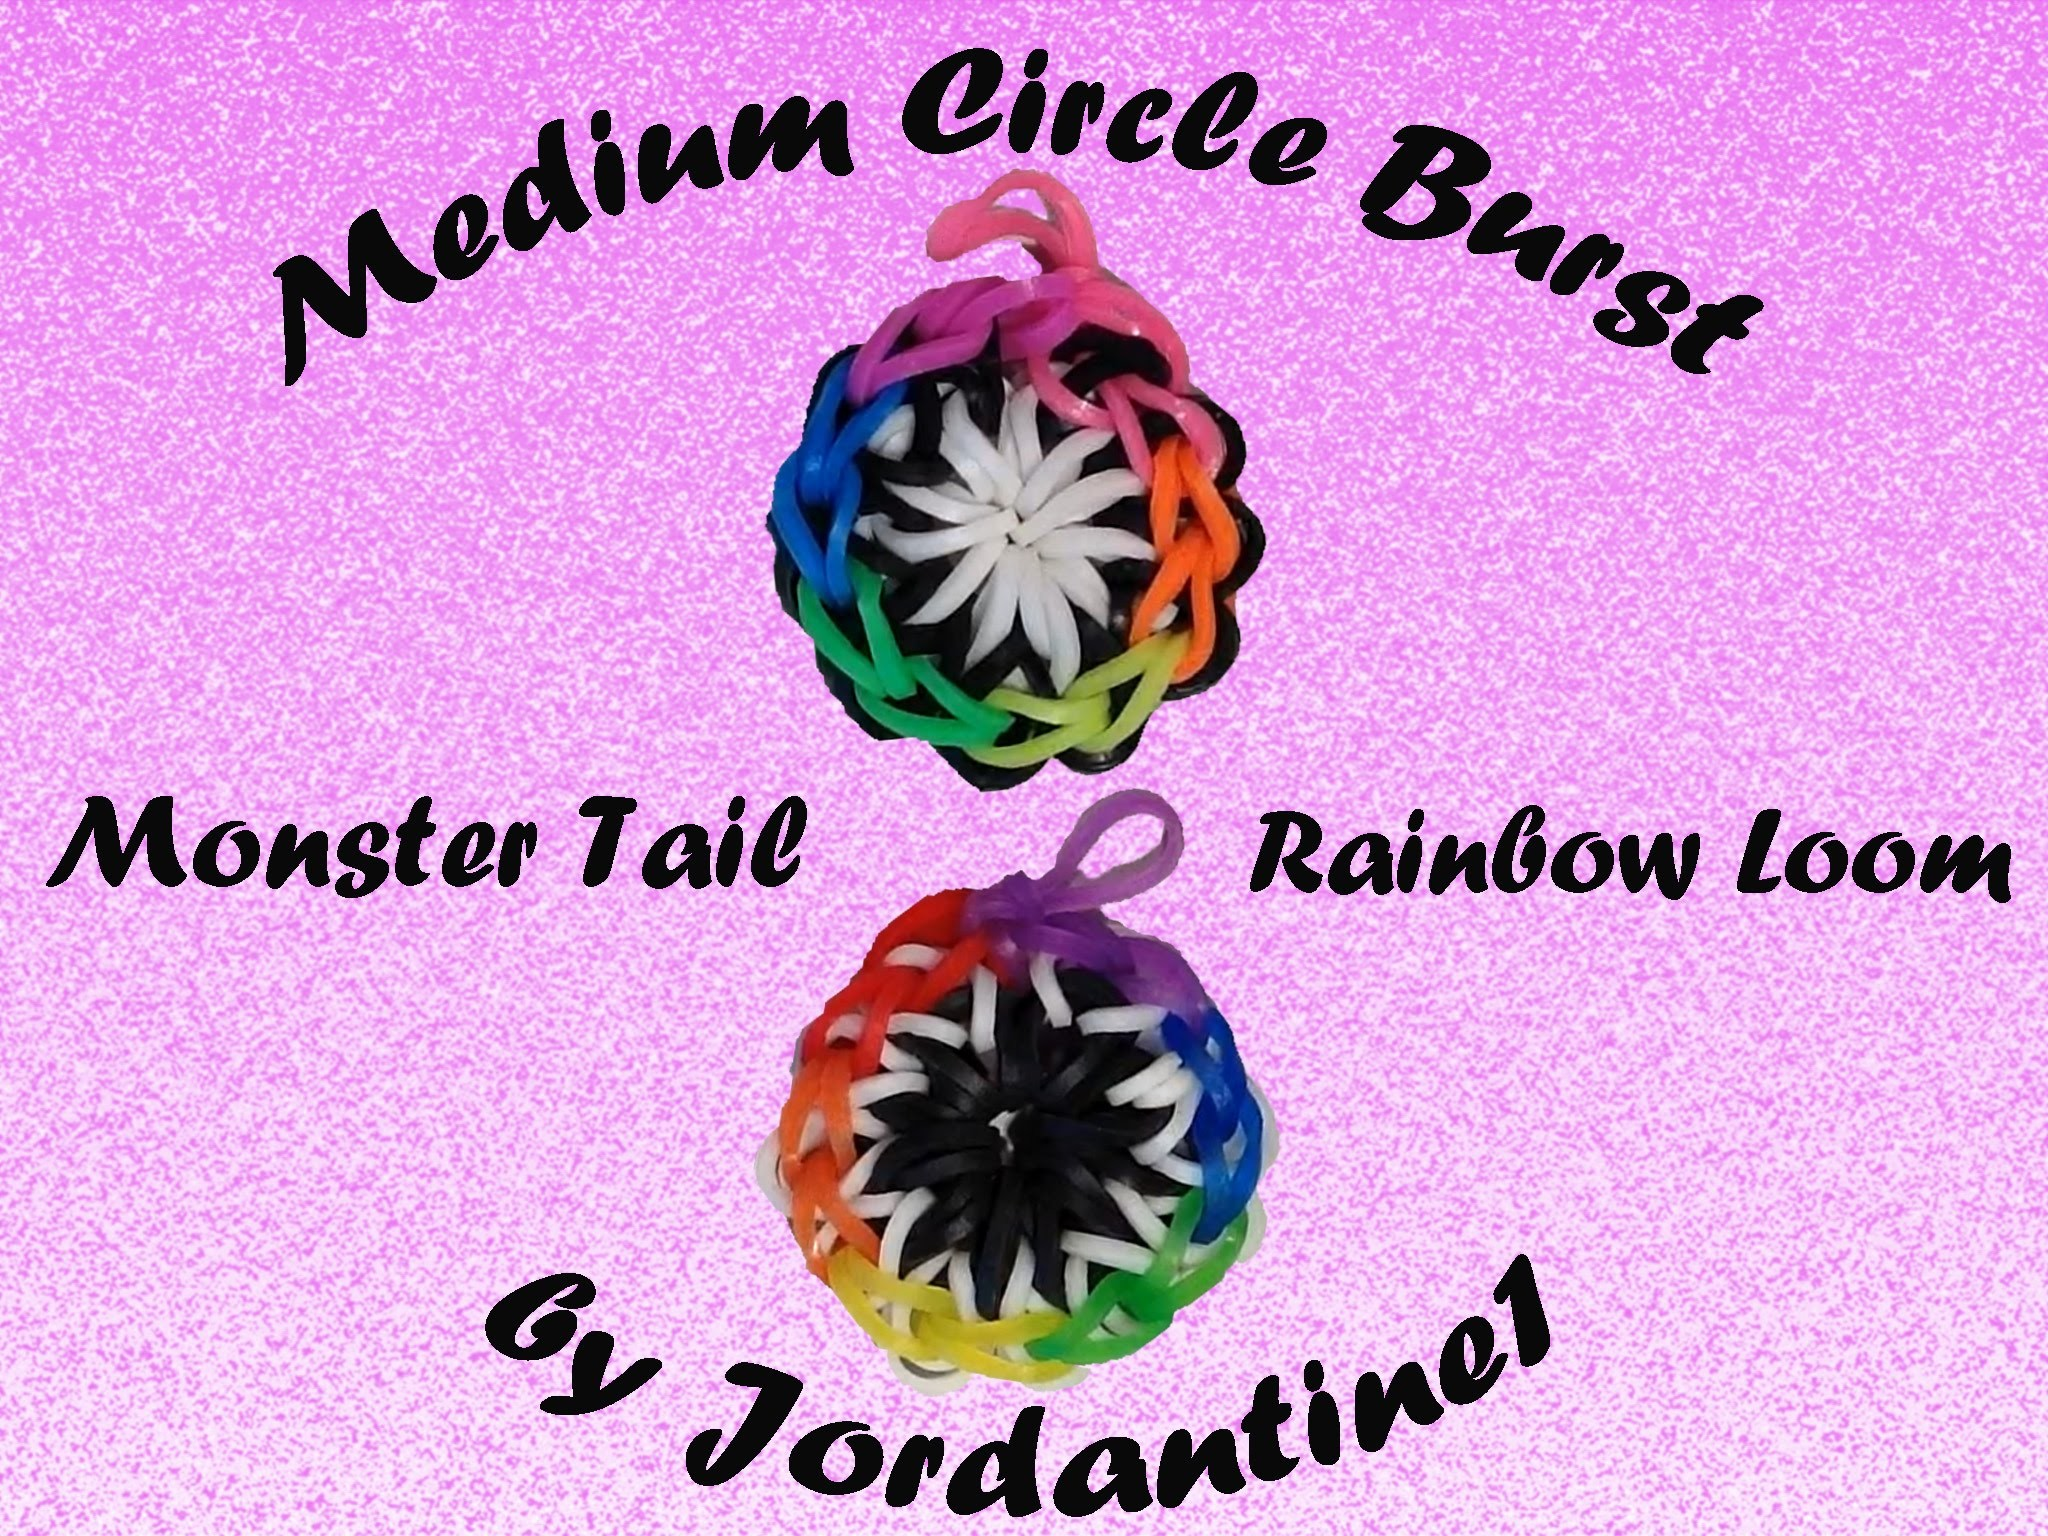 New Medium Circle Burst Charm - Monster Tail or Rainbow Loom